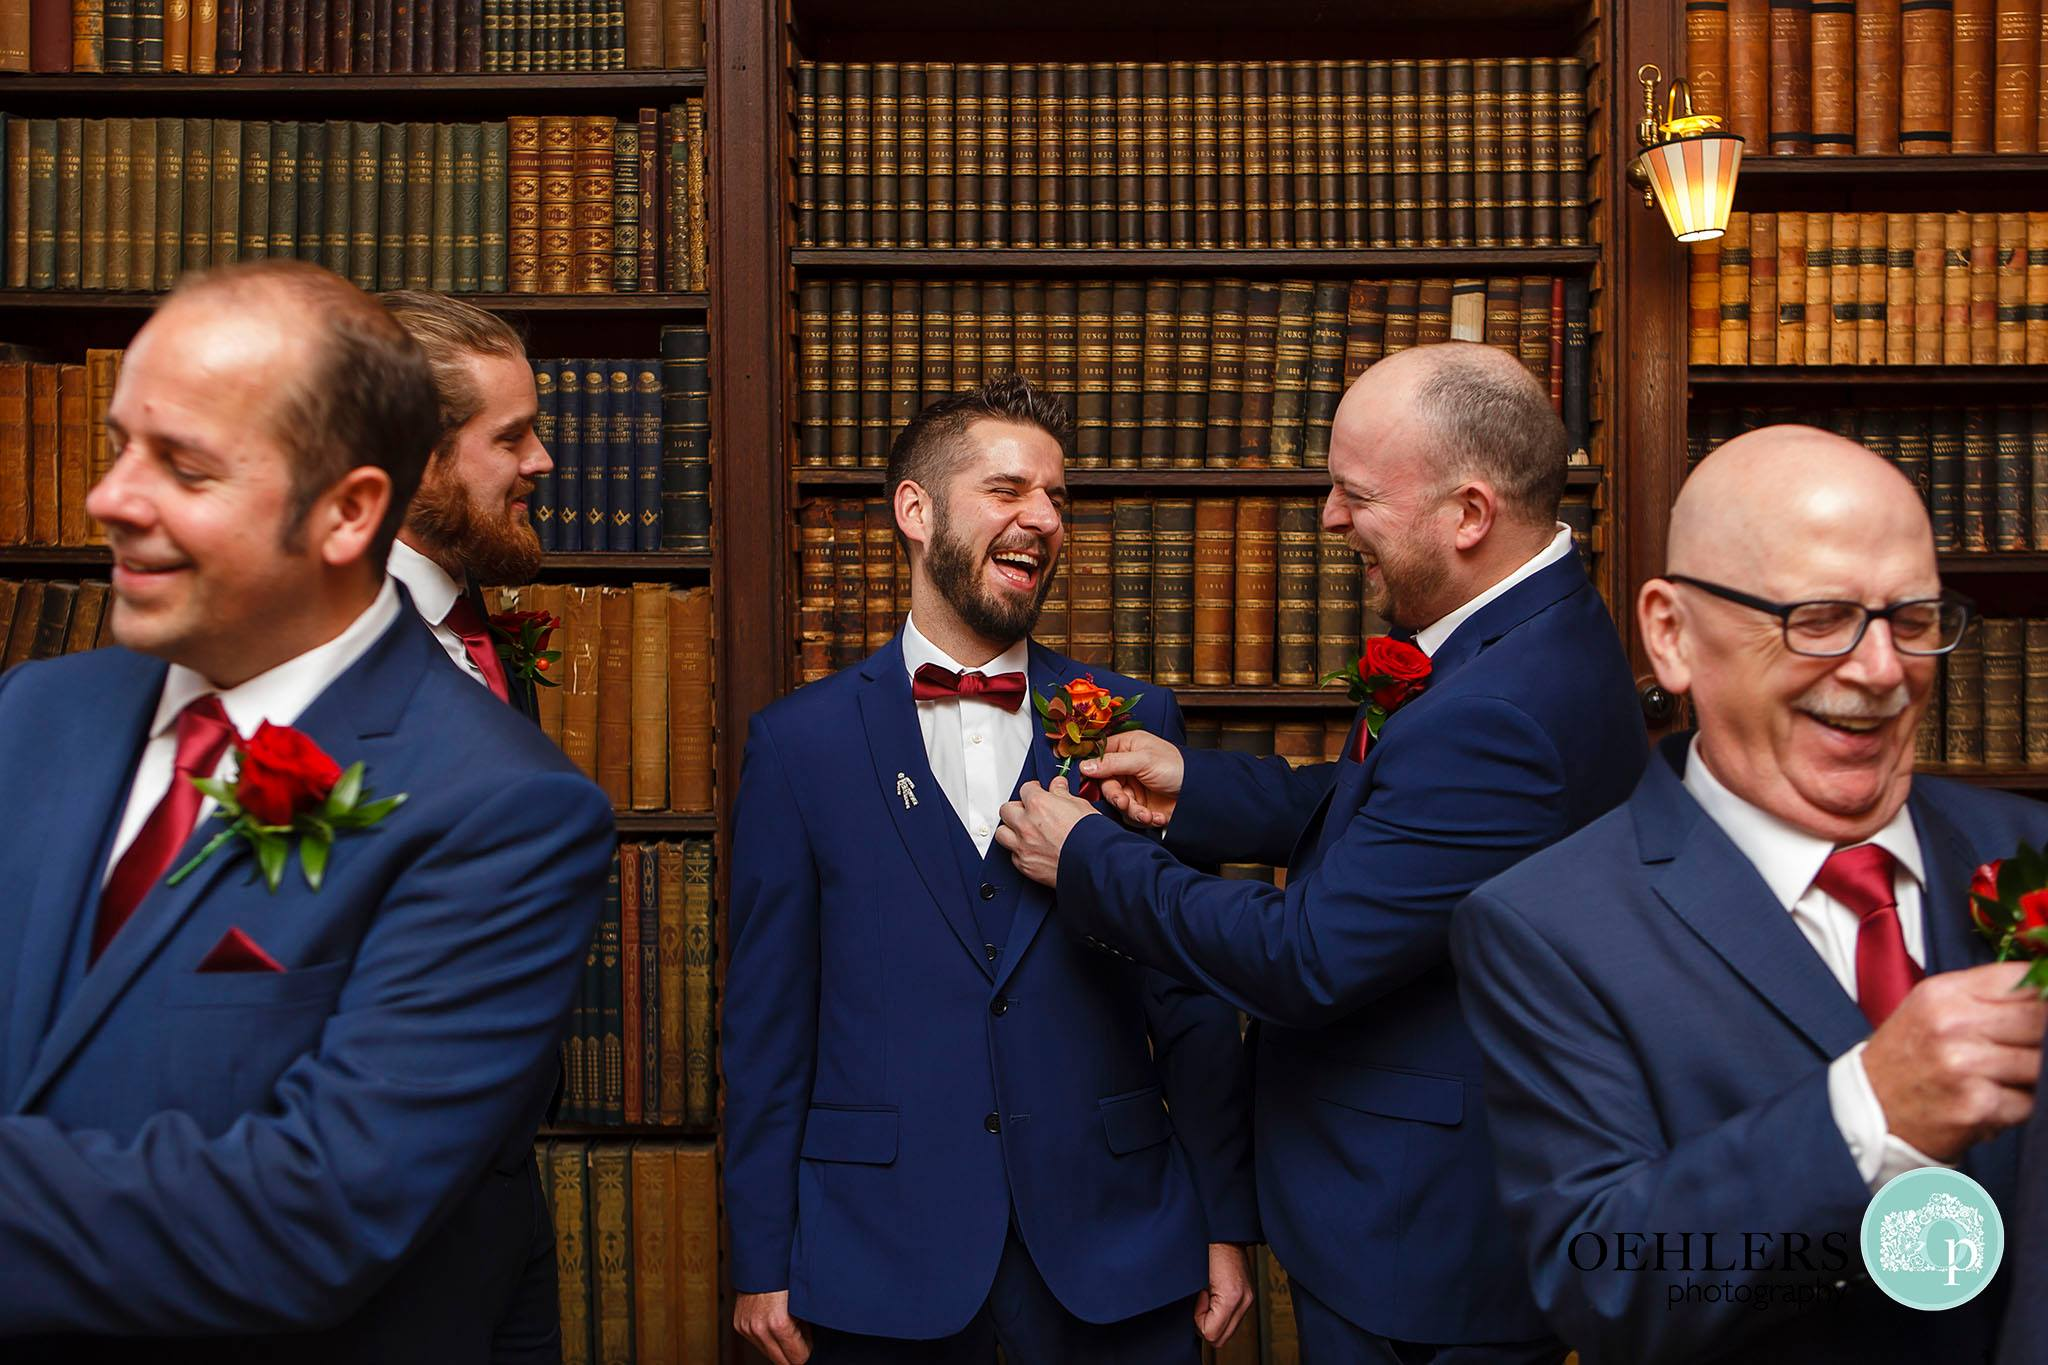 Groom and his Groomsmen in Norwood Park Library